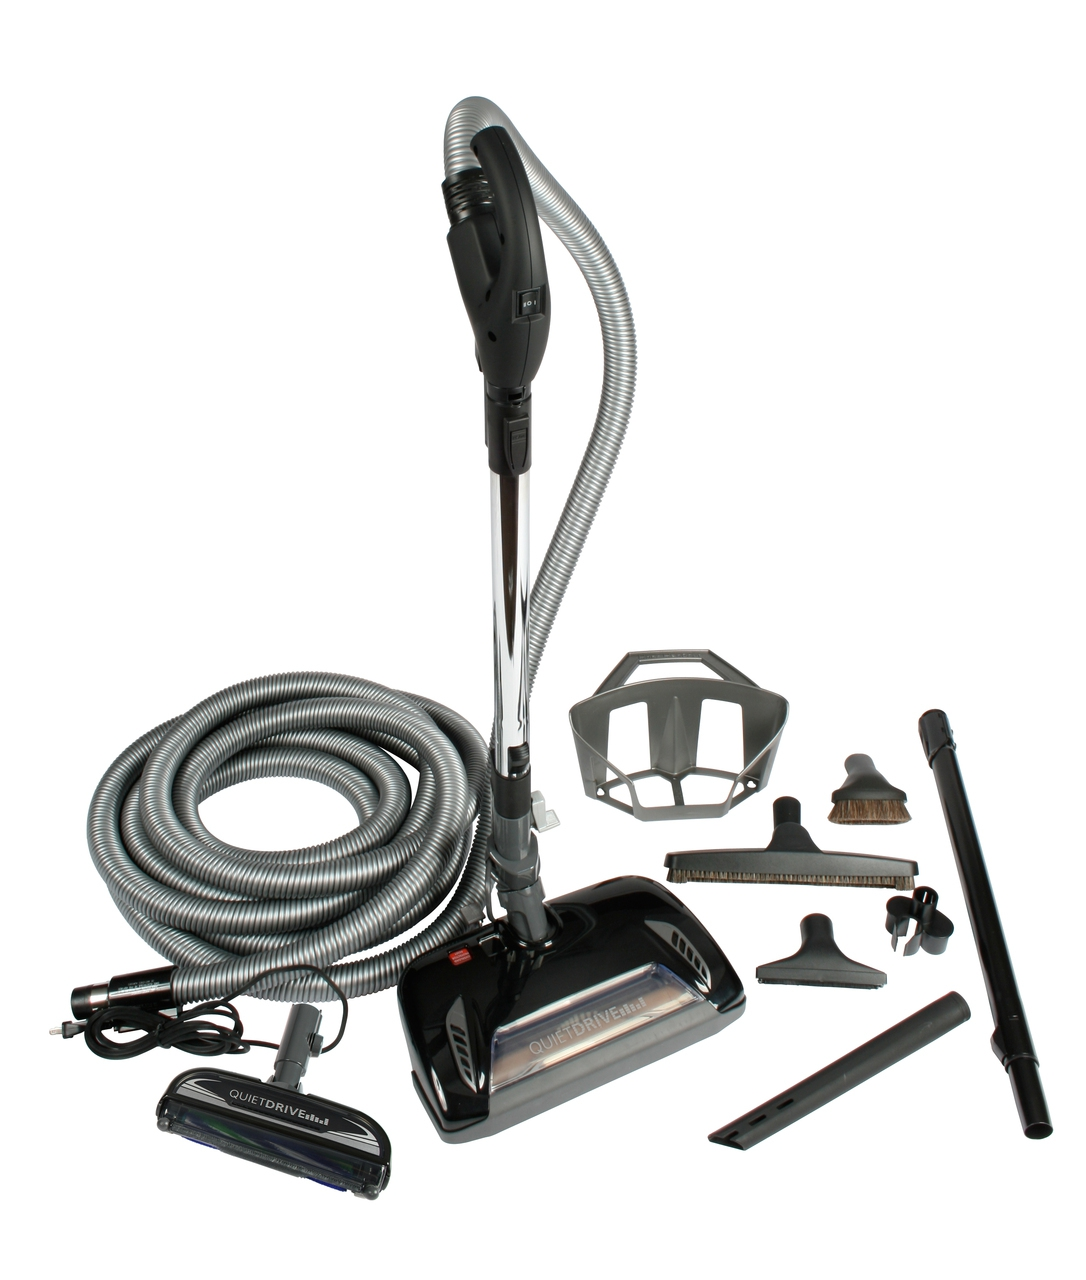 Electric Vacuum Packages